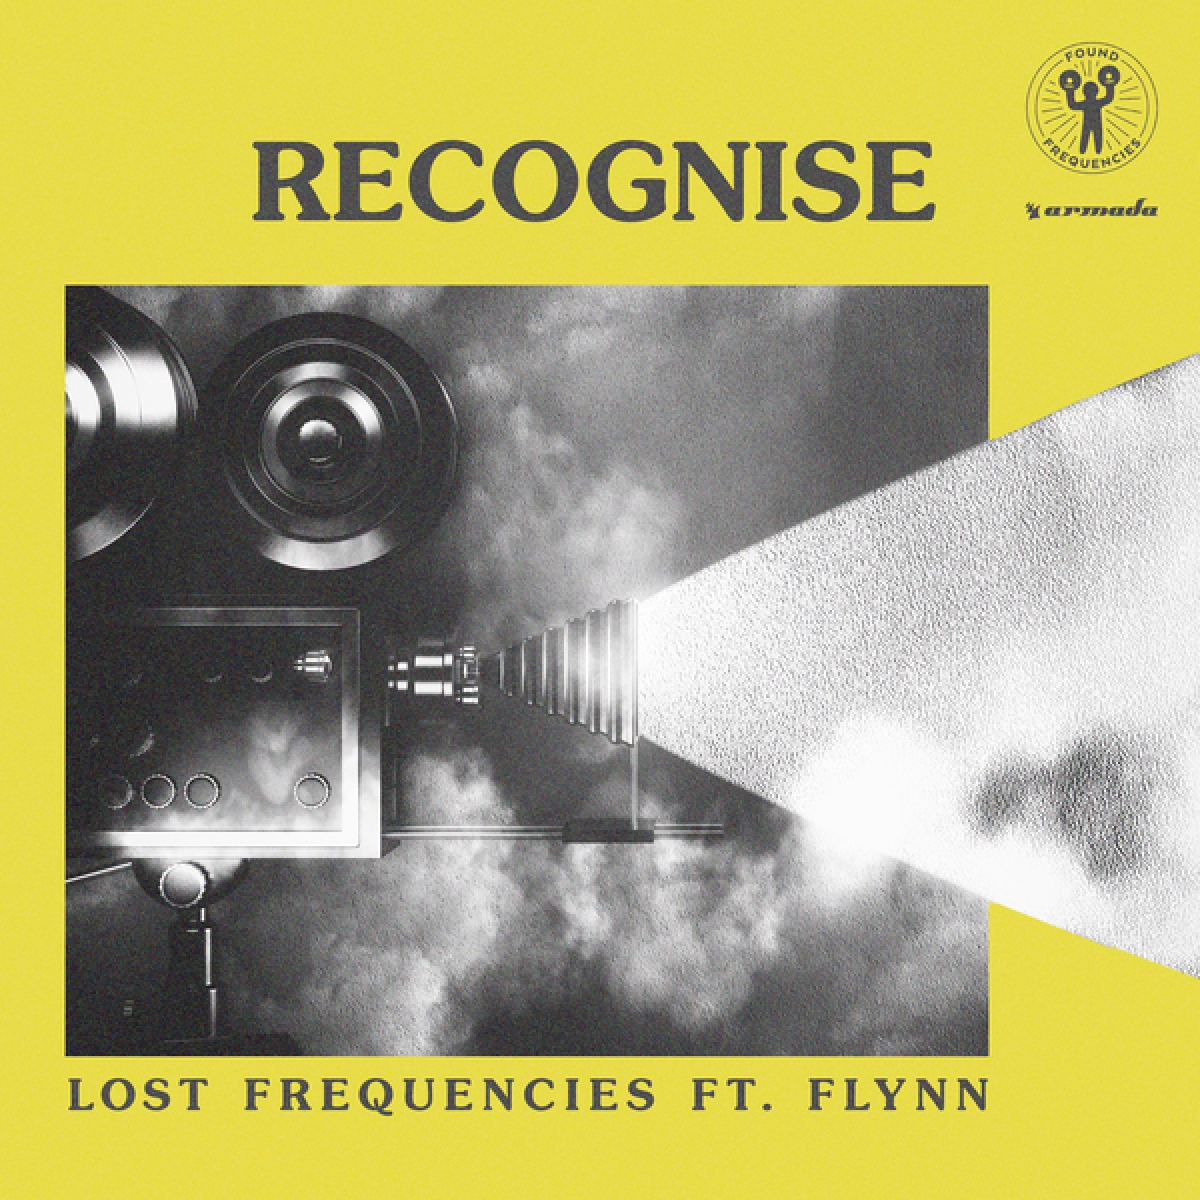 LOST FREQUENCIES - Recognise